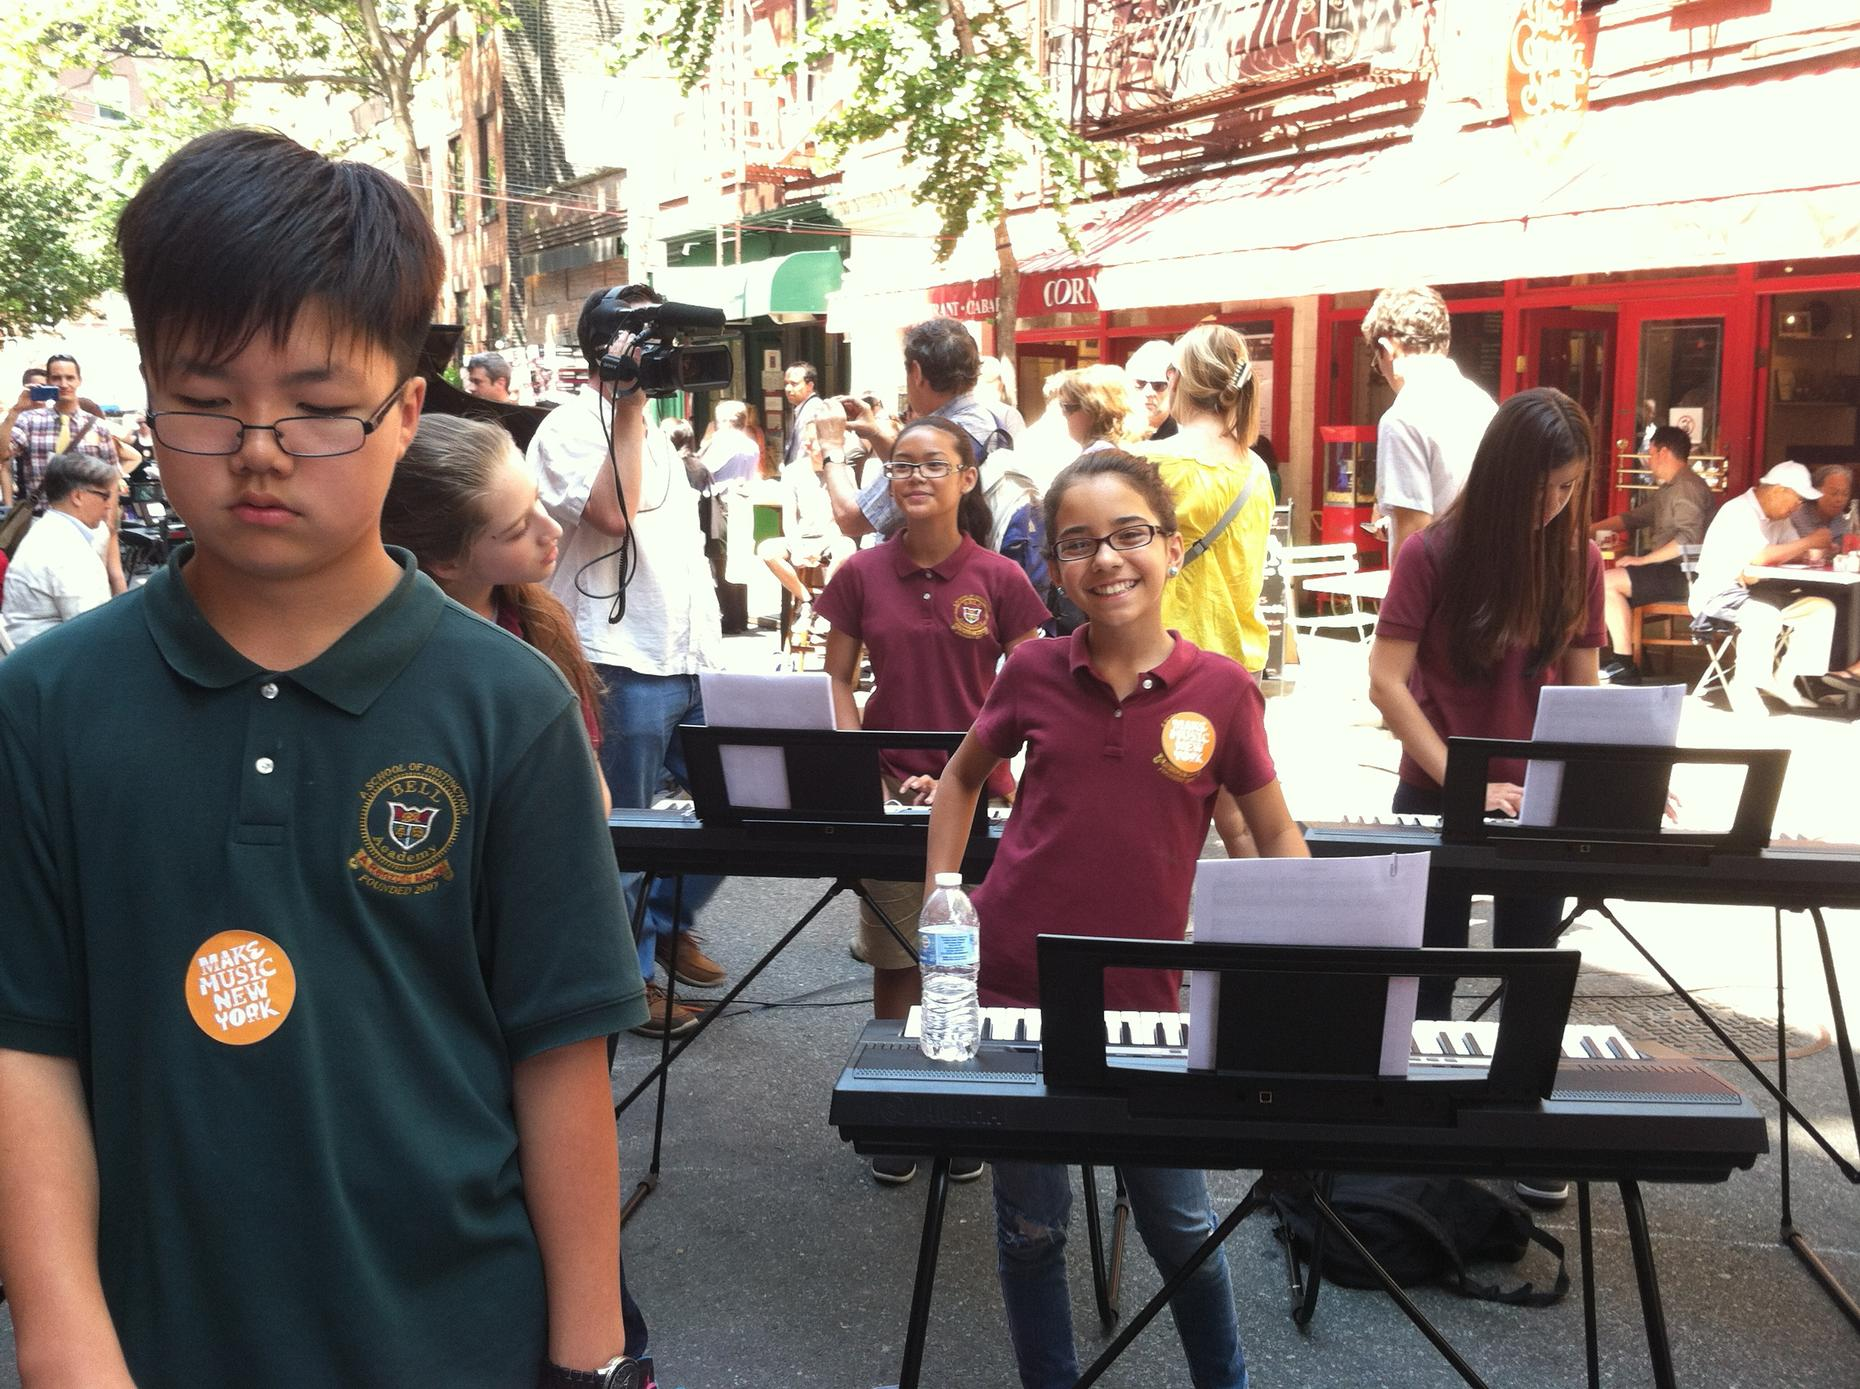 Students from Bell Academy play keyboards for Make Music New York